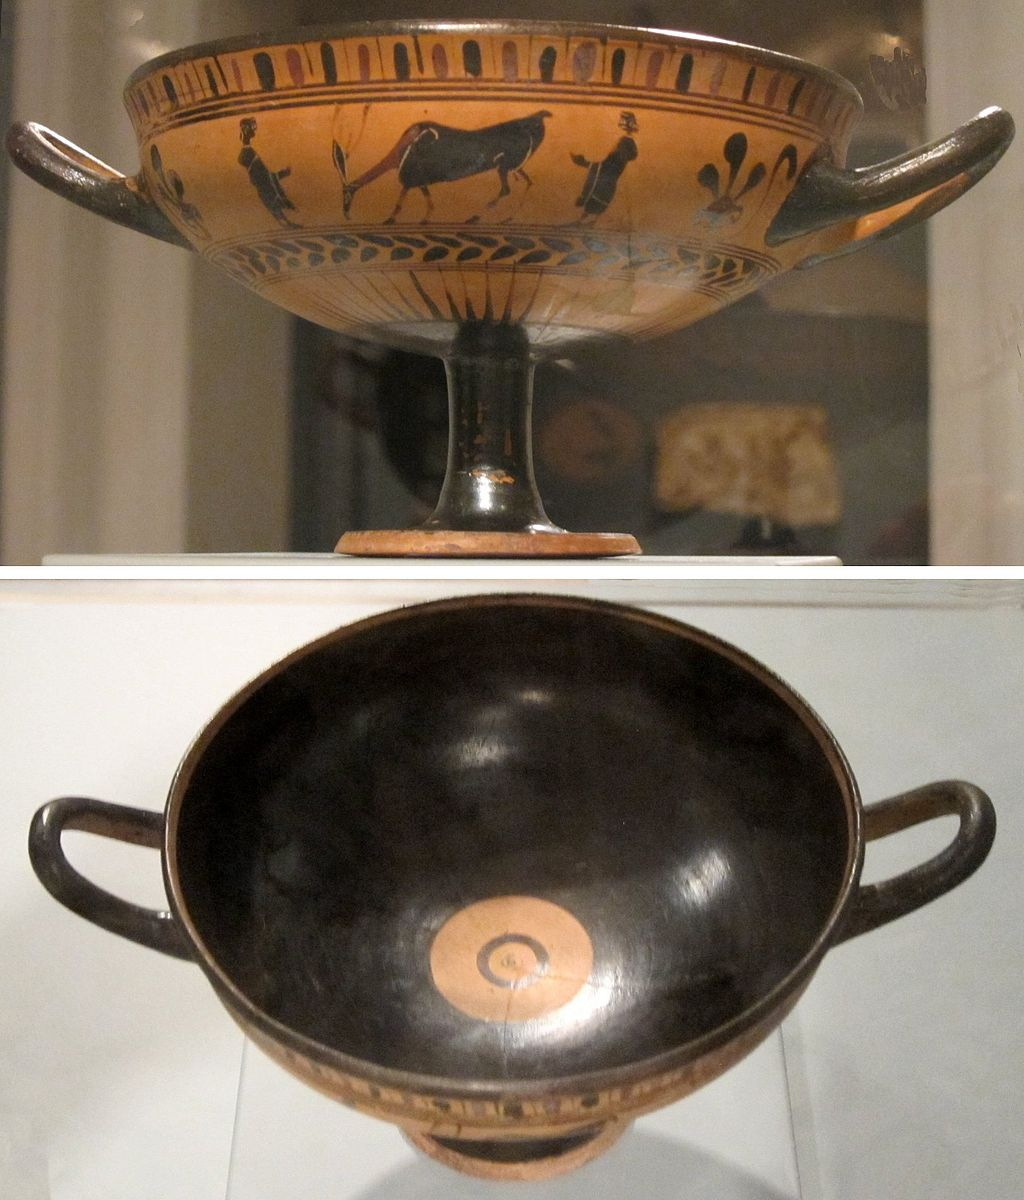 Hiart,  Black-figure terracotta kylix (wine cup), Greece. late 6th century BCE, Honolulu Academy of Arts , 1 January 2011, CC0 1.0.  Cup that was used mainly to drink wine, mixed with water (usually) at symposiums or male drinking parties.   Food for thought; Is the size/volume of this cup trying to tell us something? Maybe… overconsumption? This cup does not seem to resemble the typical narrow and small wine cups we have today.